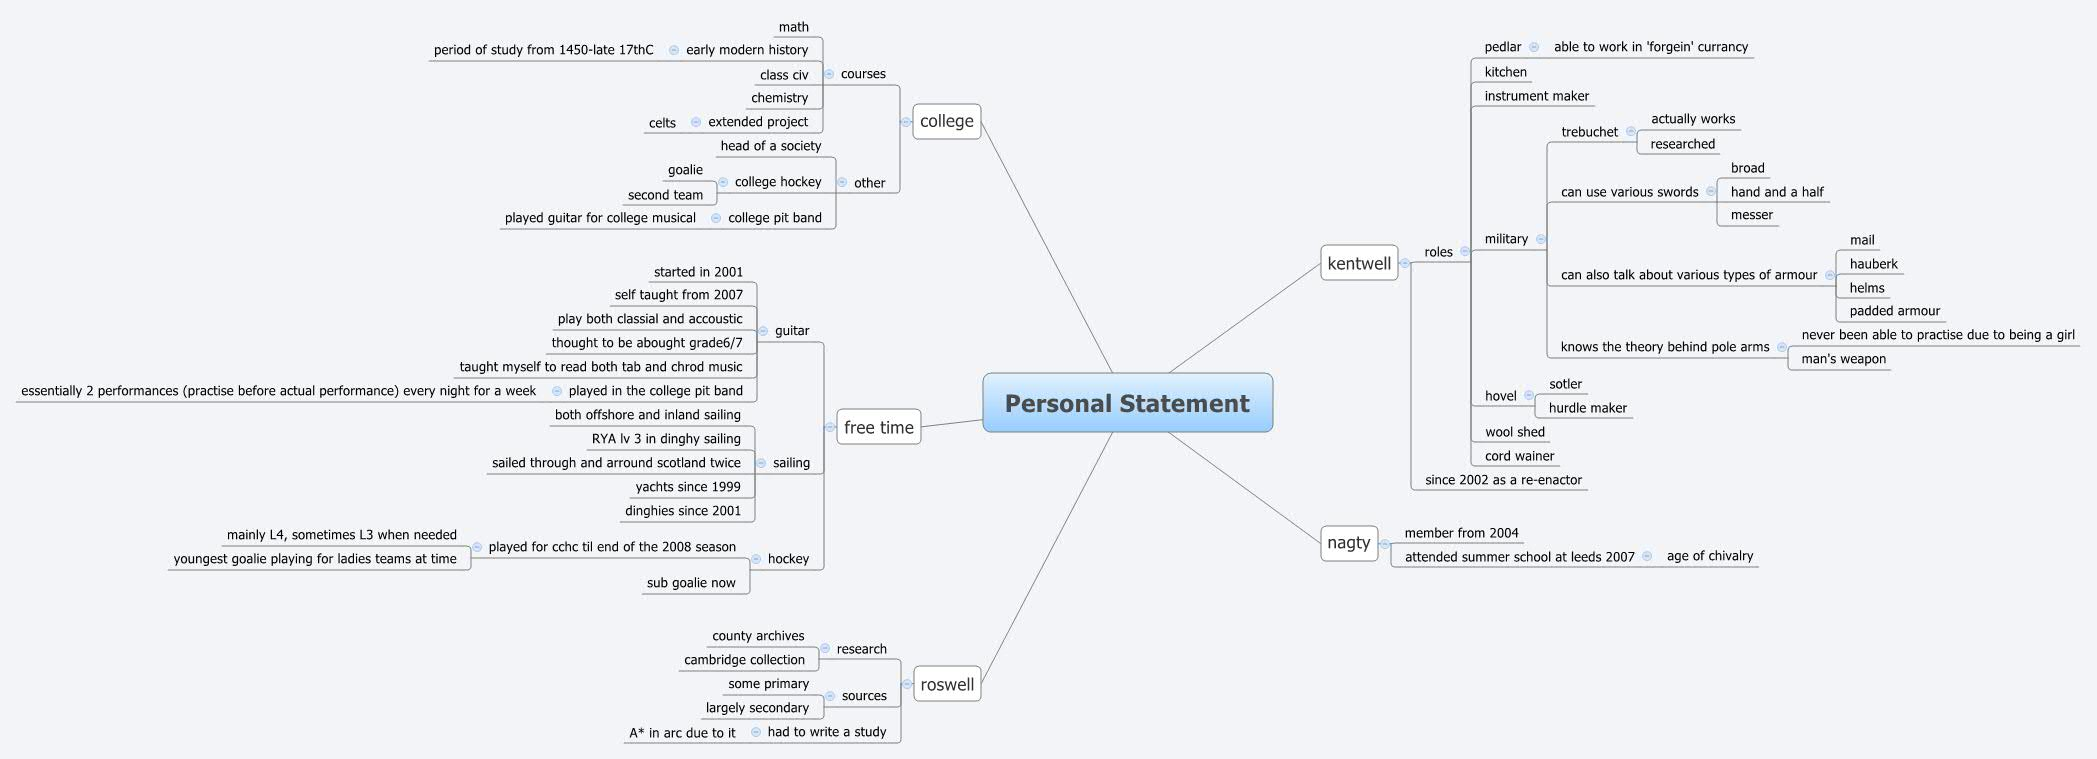 Personal Statement Format Impact | Personal Statement Writer